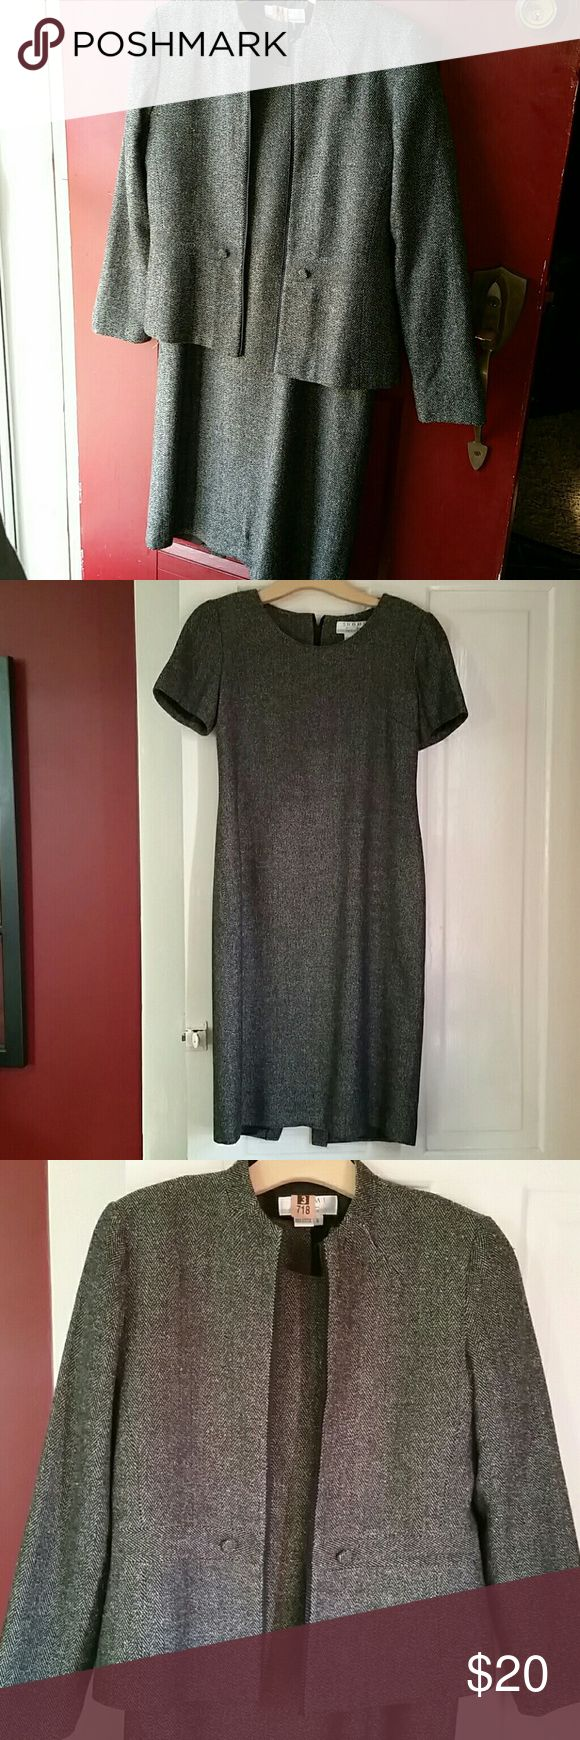 Two piece by SHOMI Black and white tweed. Short sleeves dress and jacket. Dress is 37 inches long, with hidden back zipper.  Beautiful two piece, and in great condition. * SHOMI  Dresses